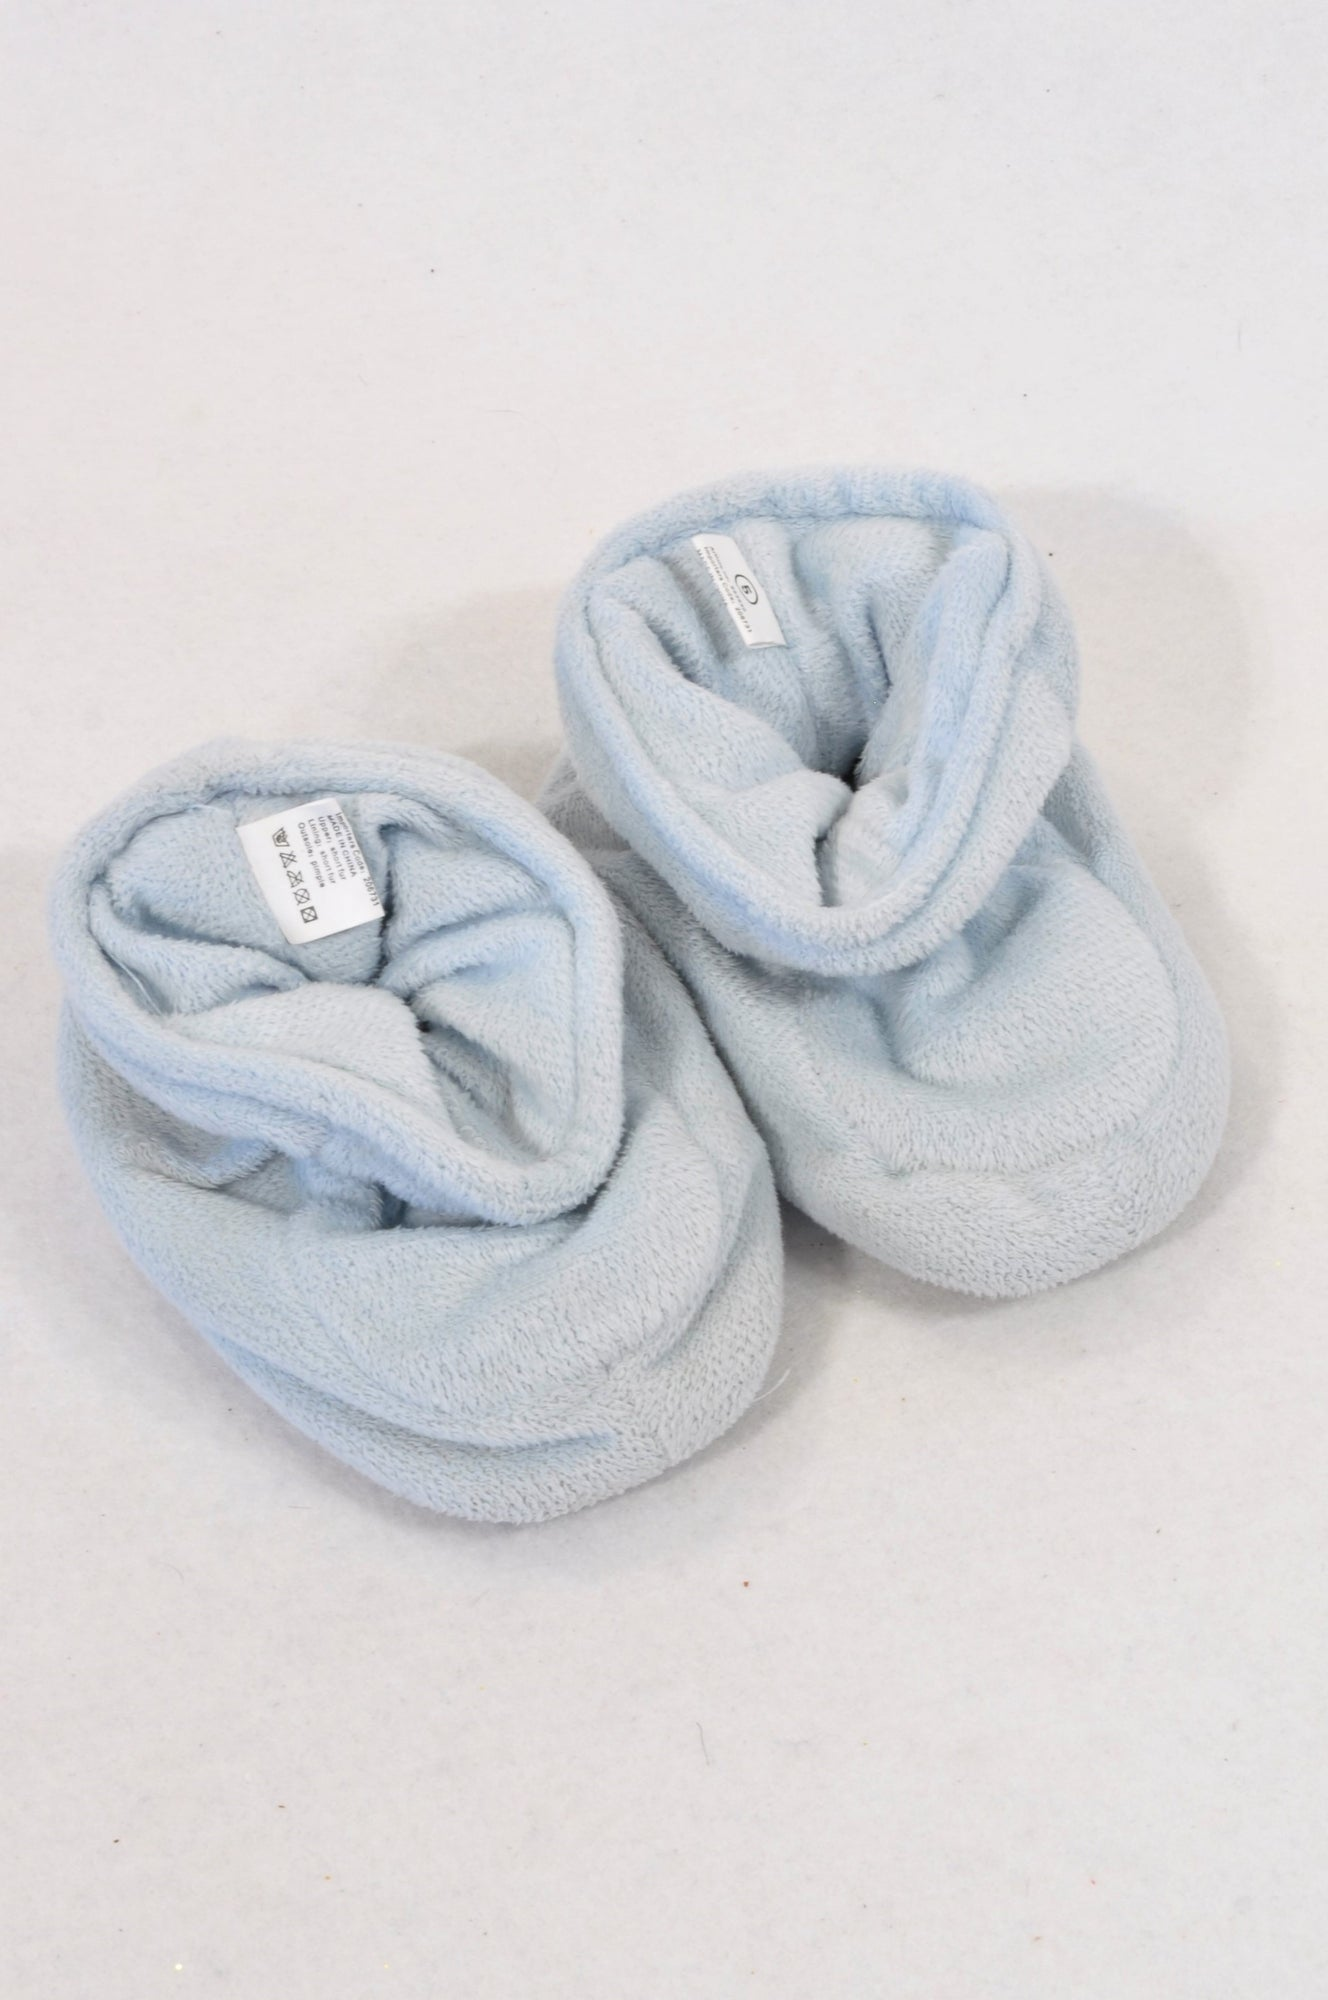 Unbranded Size 4 Light Blue Soft Slippers Unisex 12-18 months